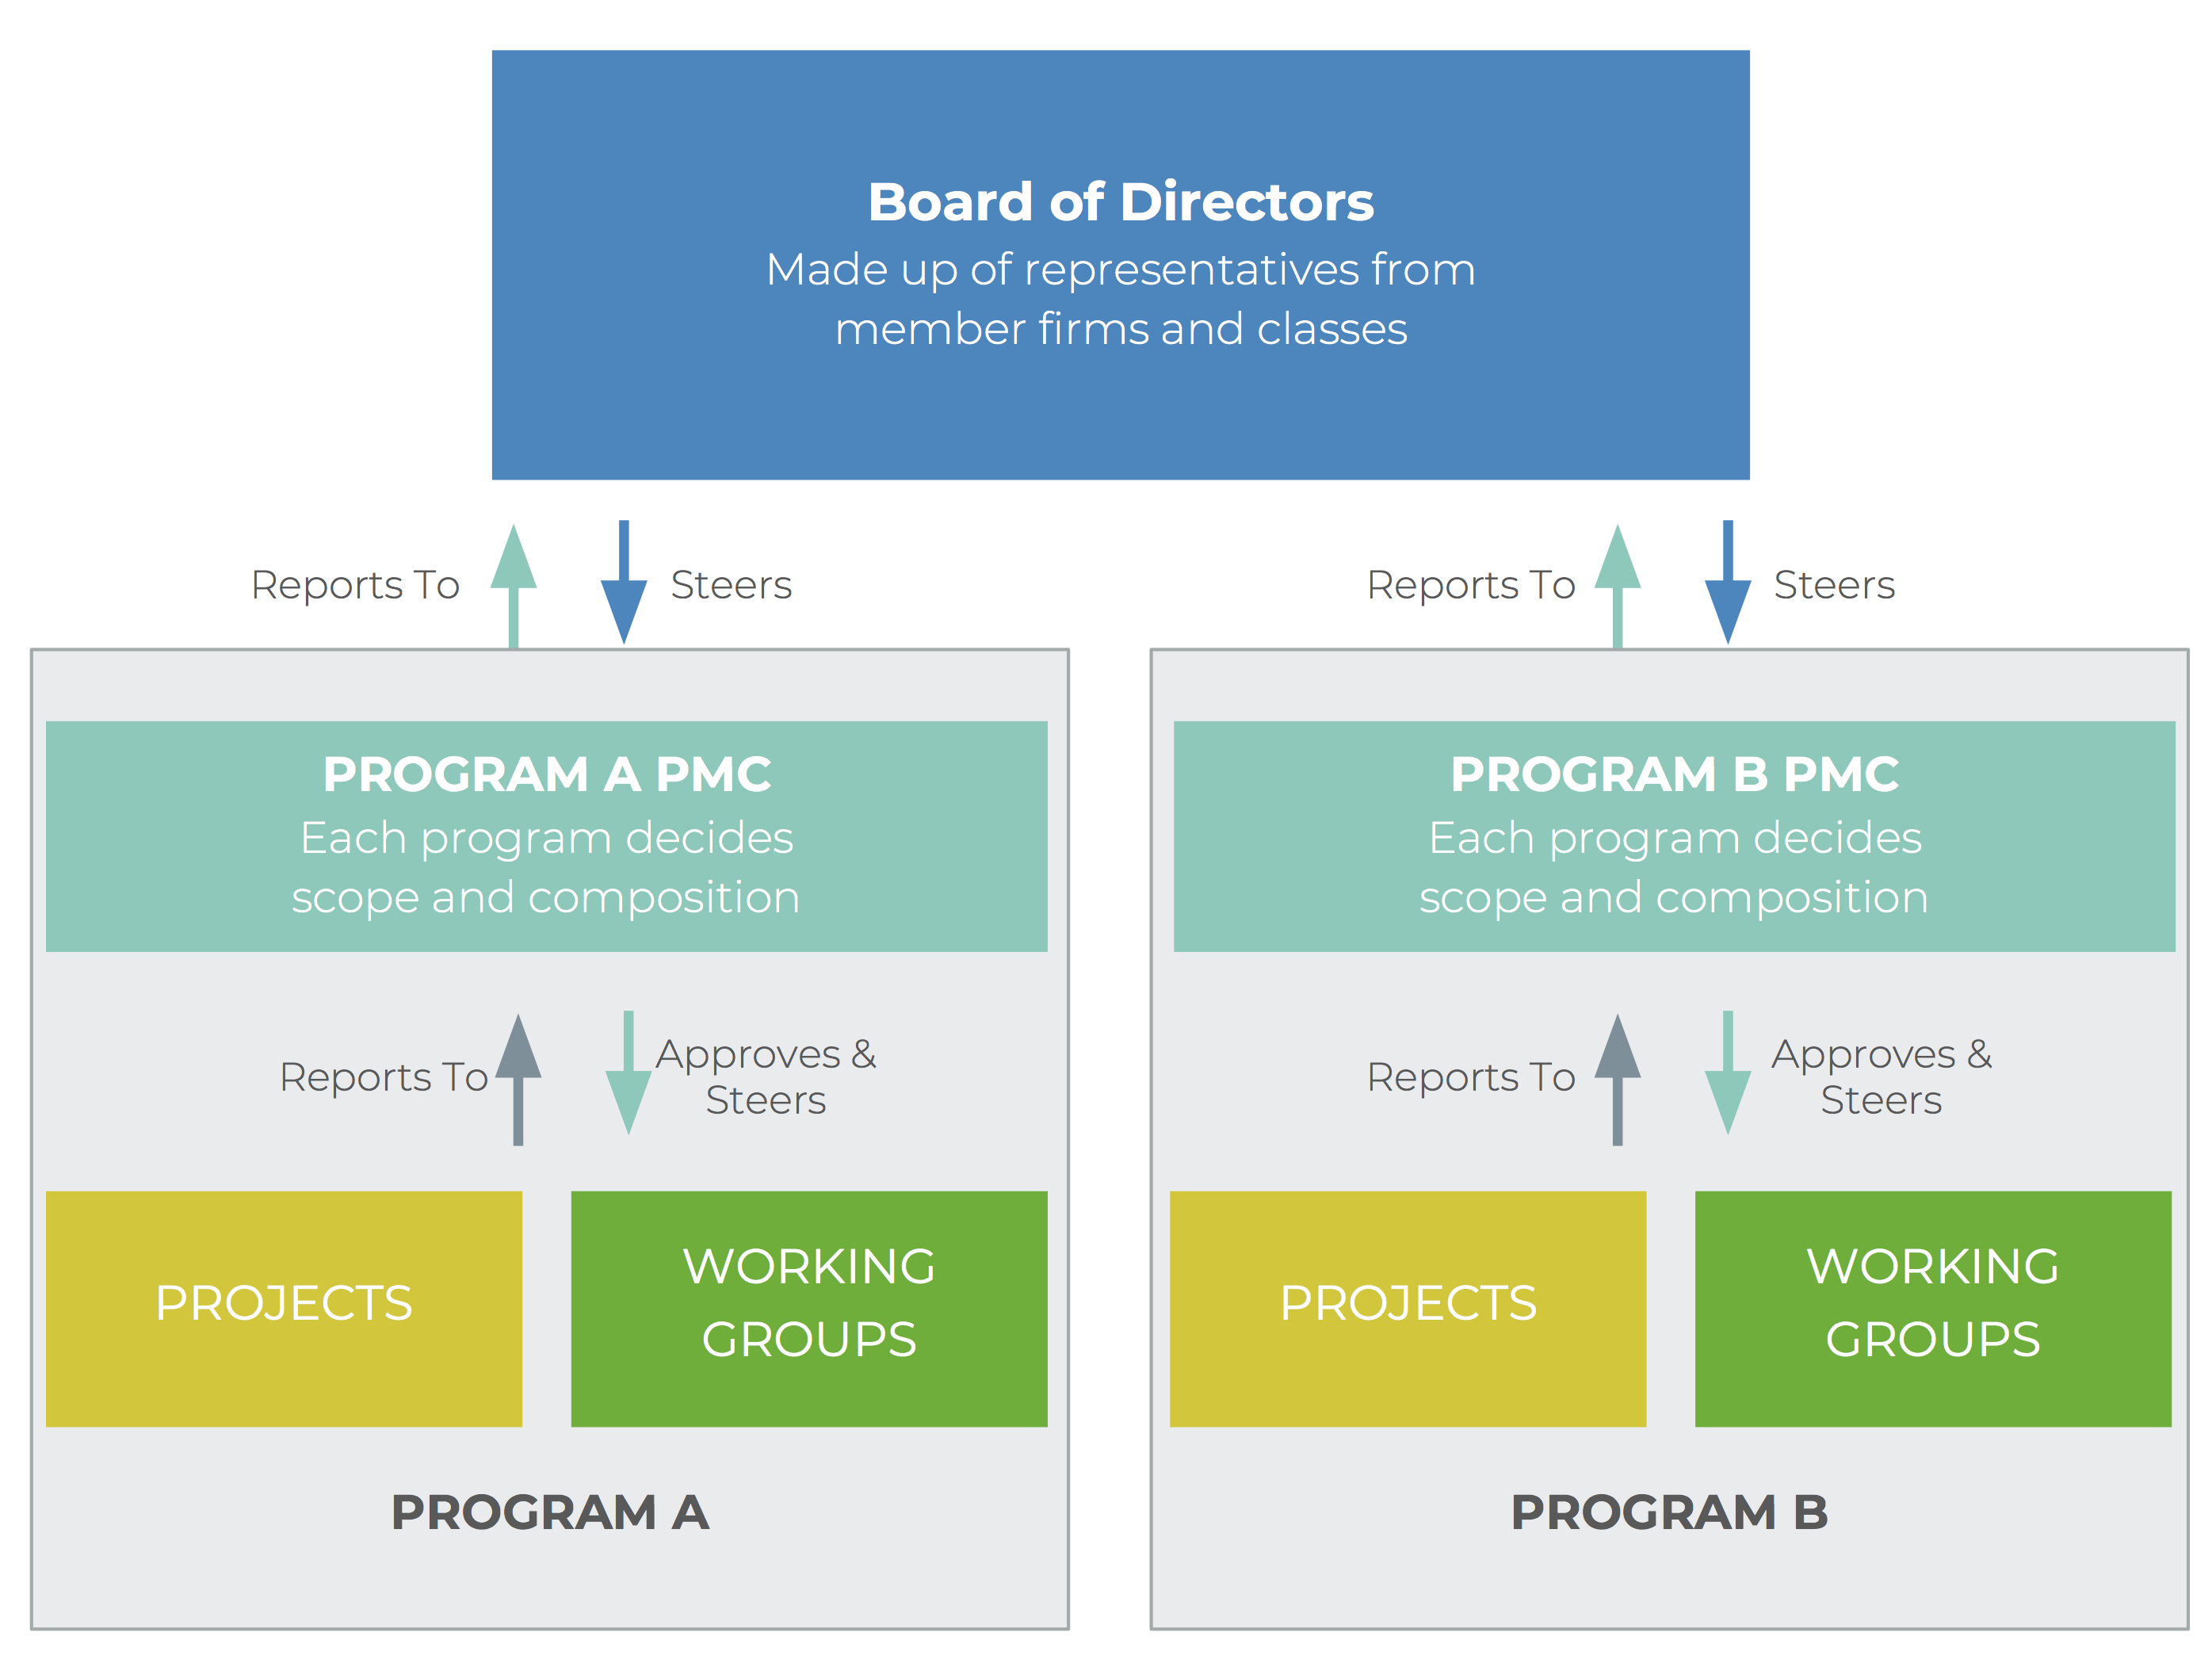 finos-programs-projects-working-groups.png